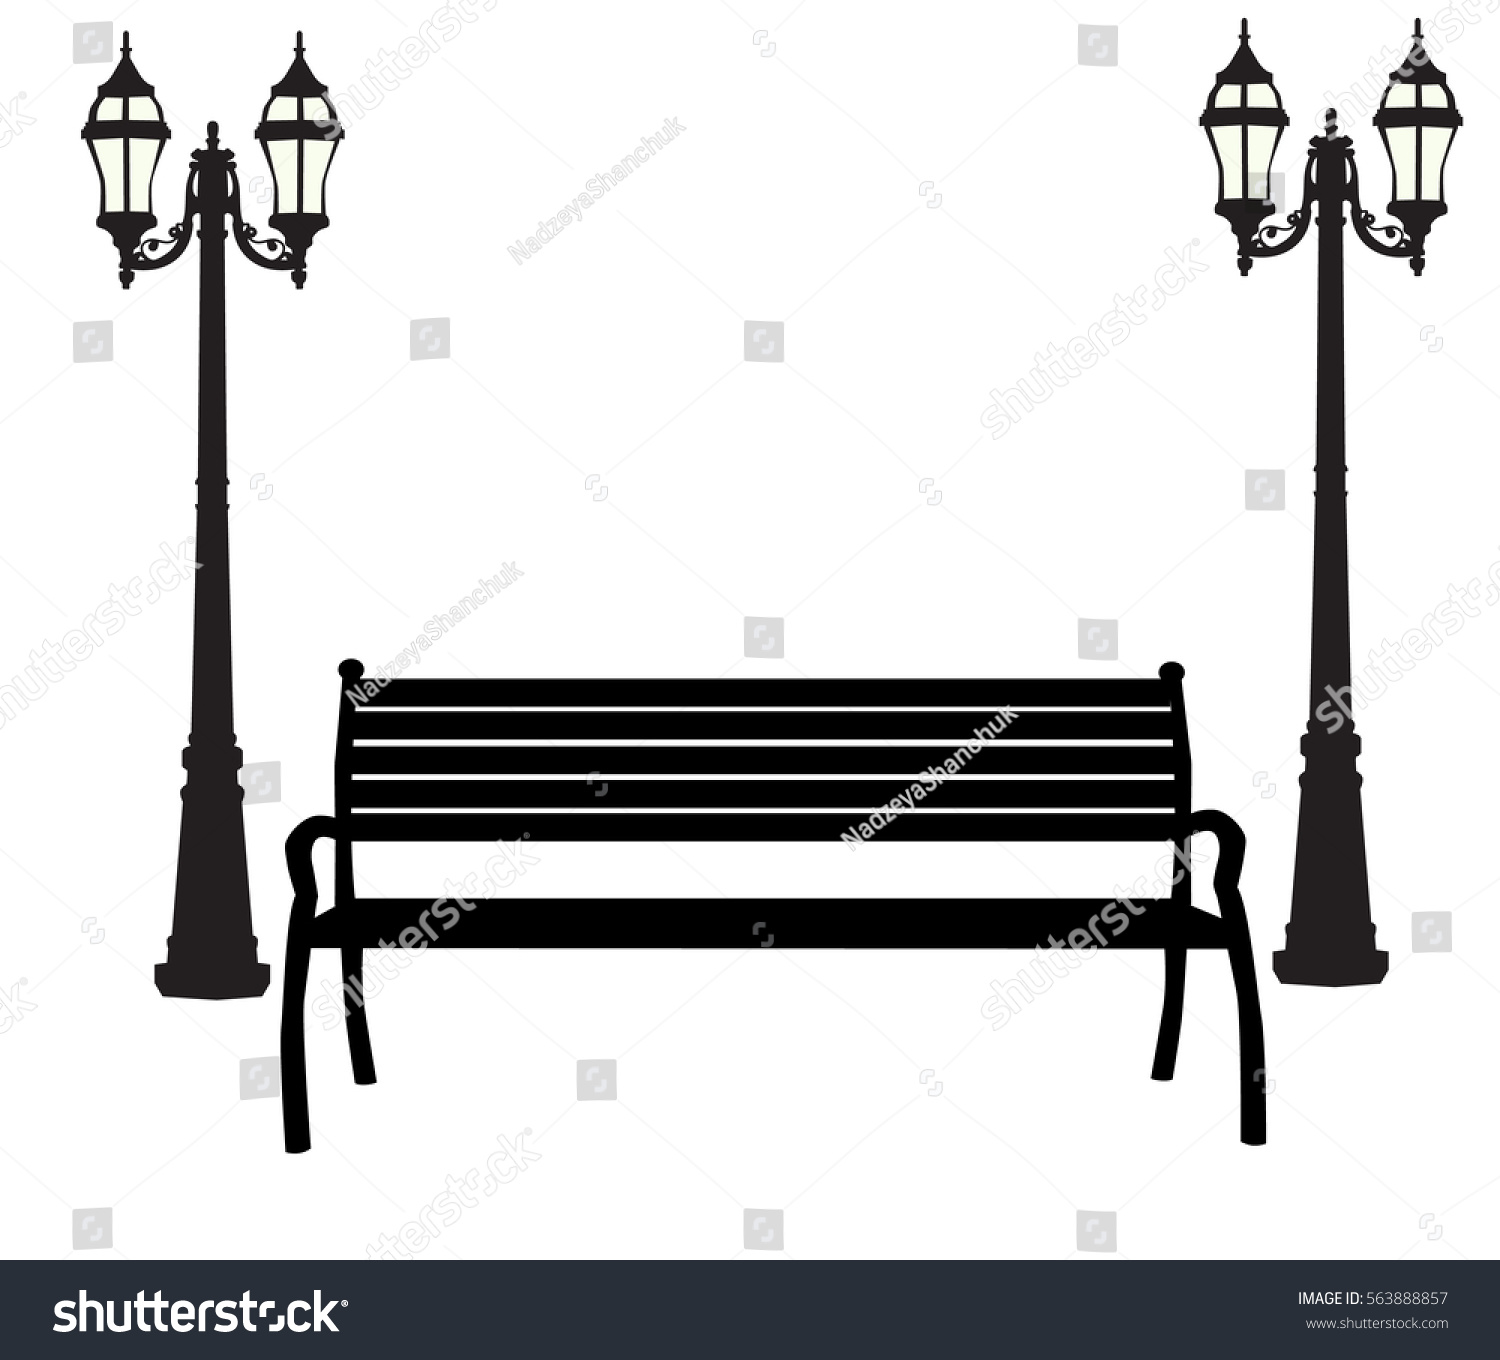 Vector Silhouette Bench Lanterns Stock Vector (2018) 563888857 ... for Bench Silhouette Side  54lyp